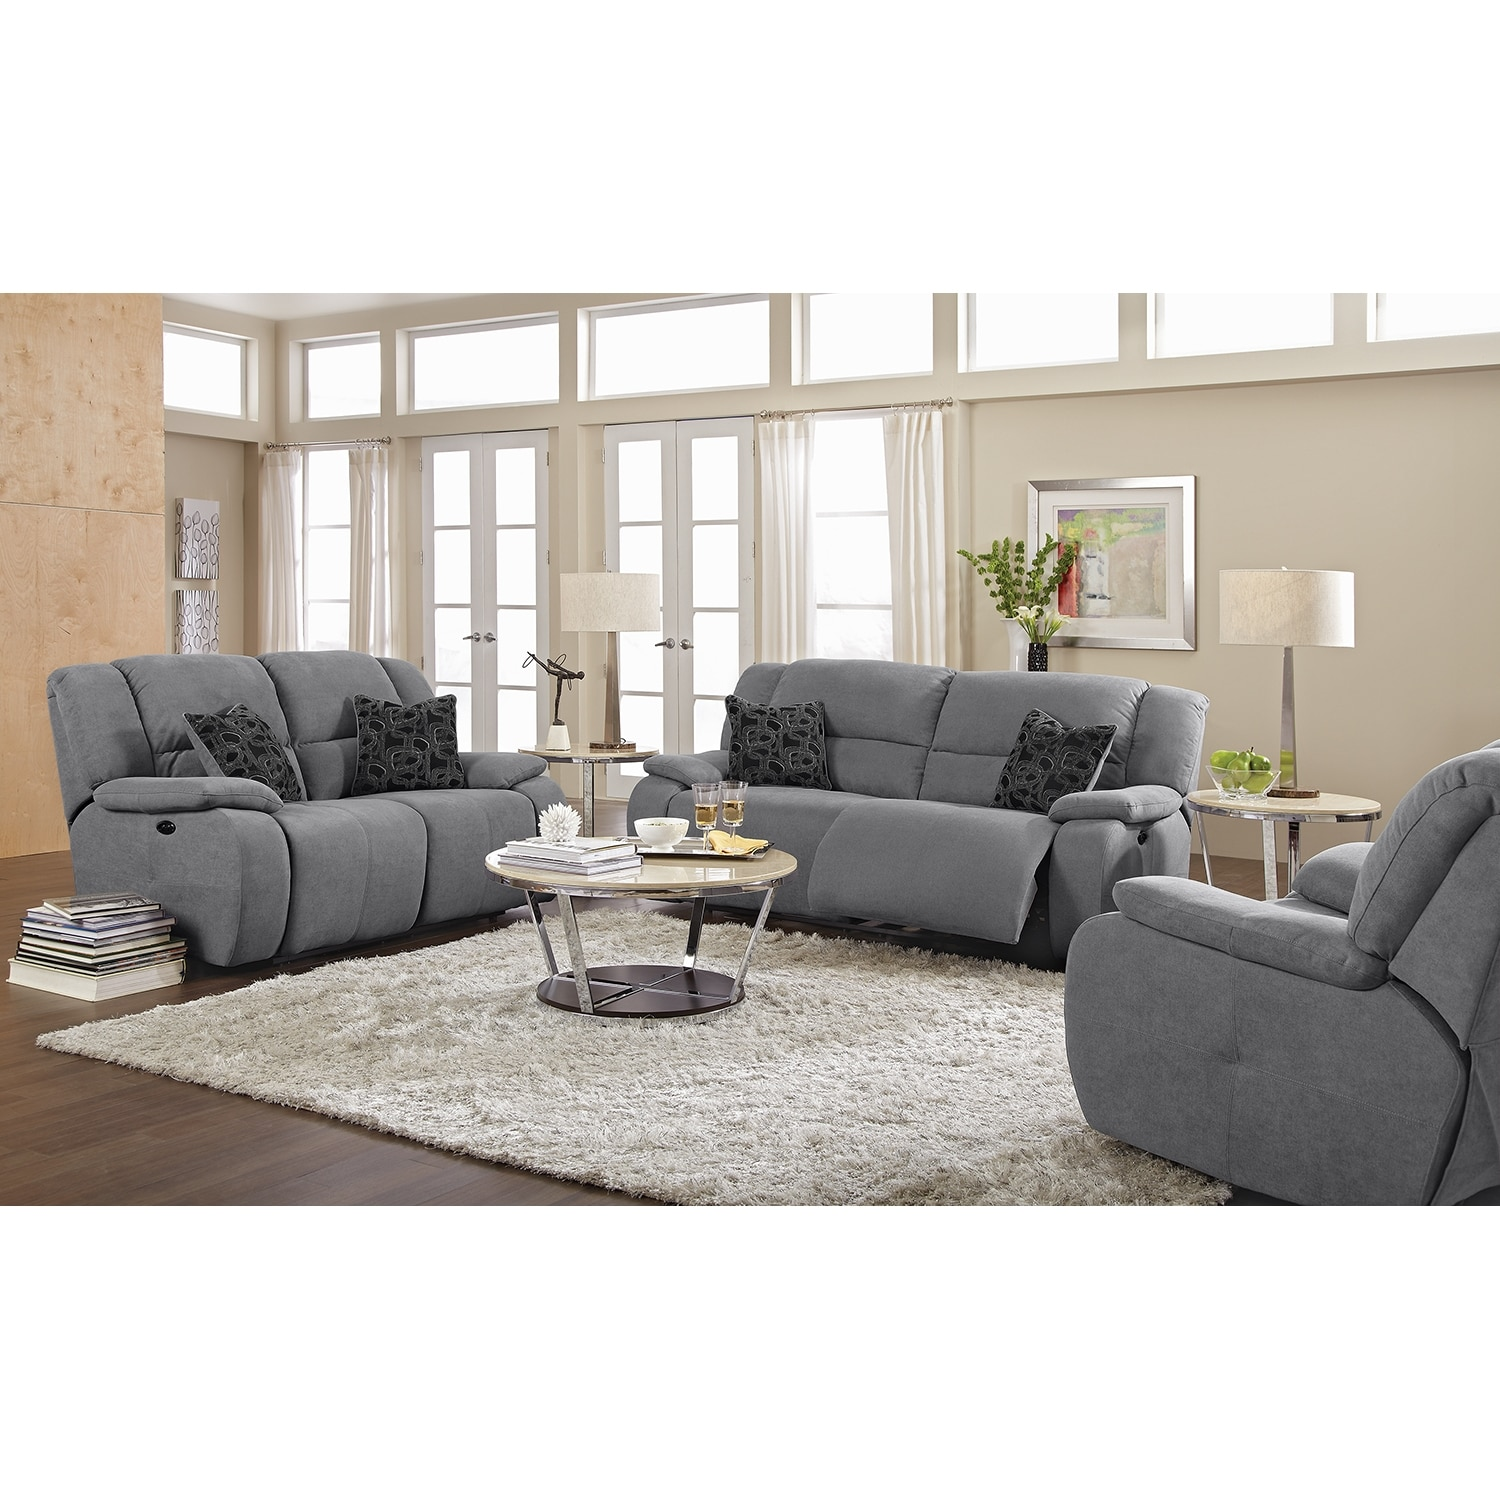 Destin gray upholstery power reclining loveseat value Reclining living room furniture